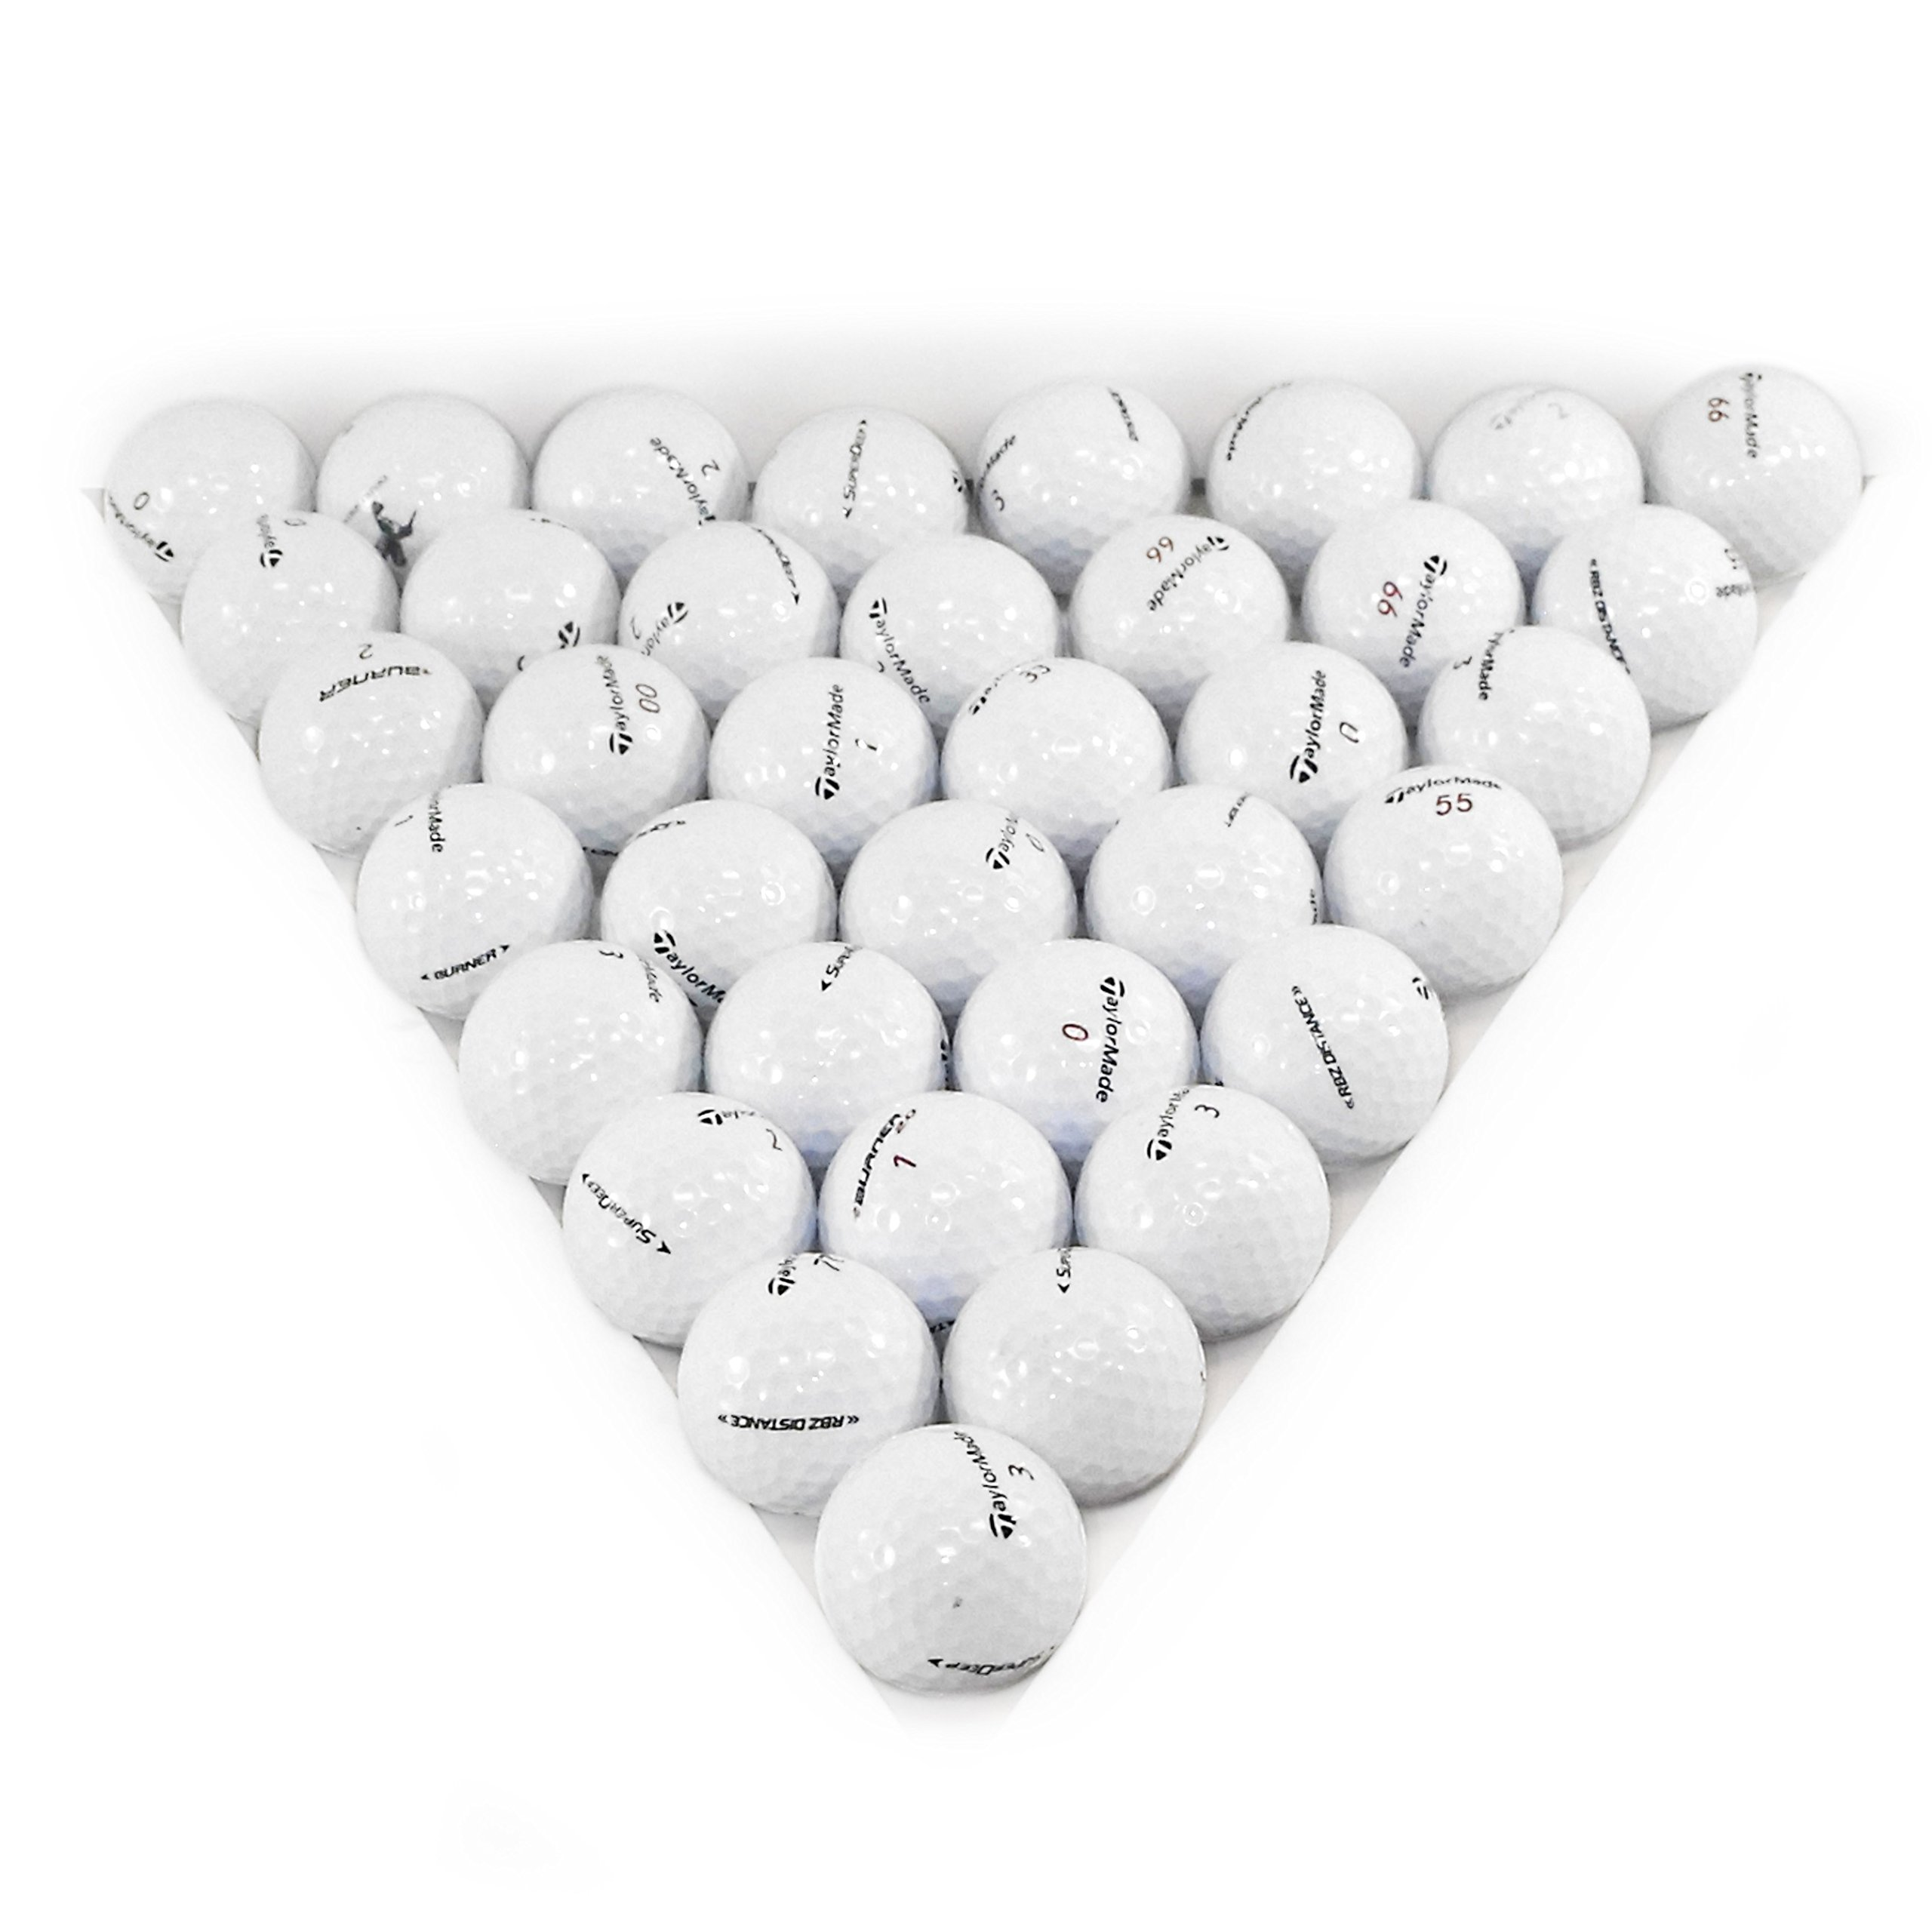 TaylorMade Assorted Models White 36 Pack Golf Balls Mint Condition () by TaylorMade